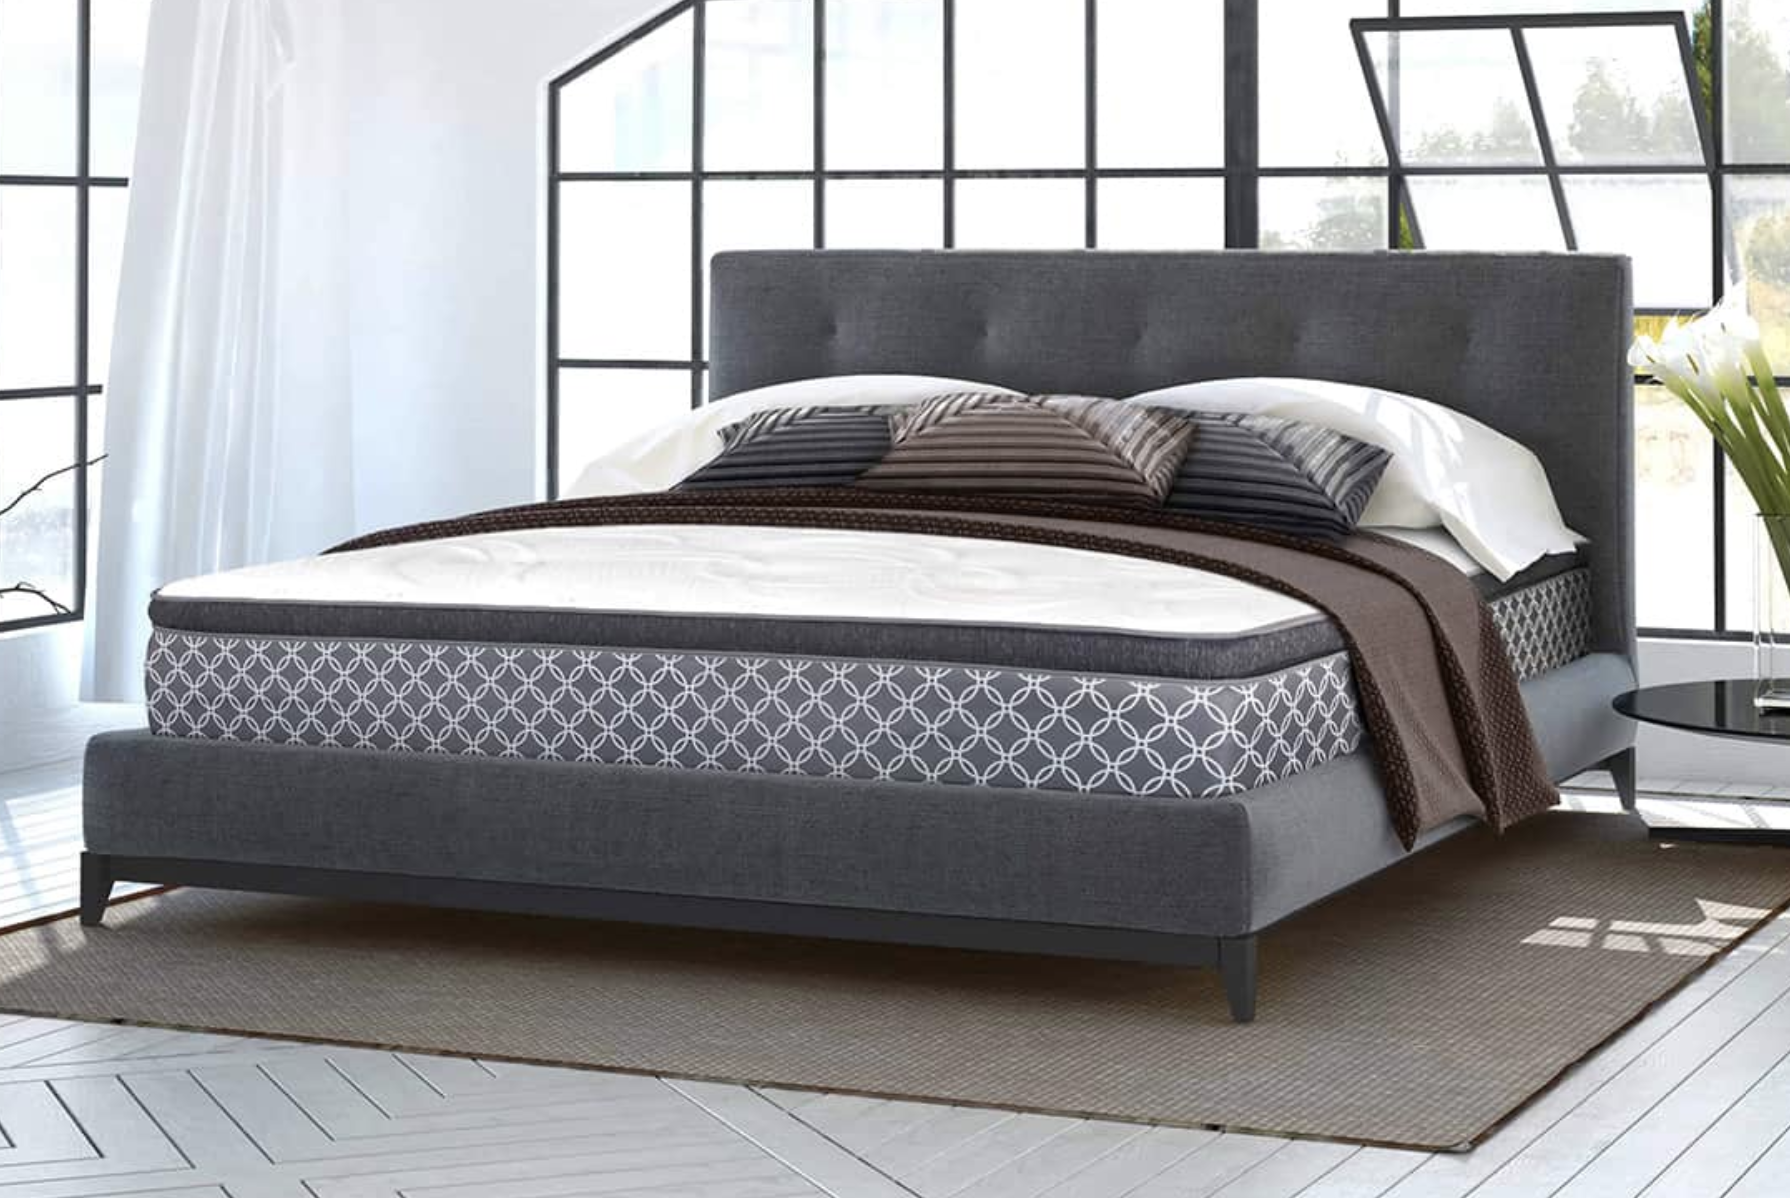 The Mattress Outlet In Crossville Tn Reviews Goodbed